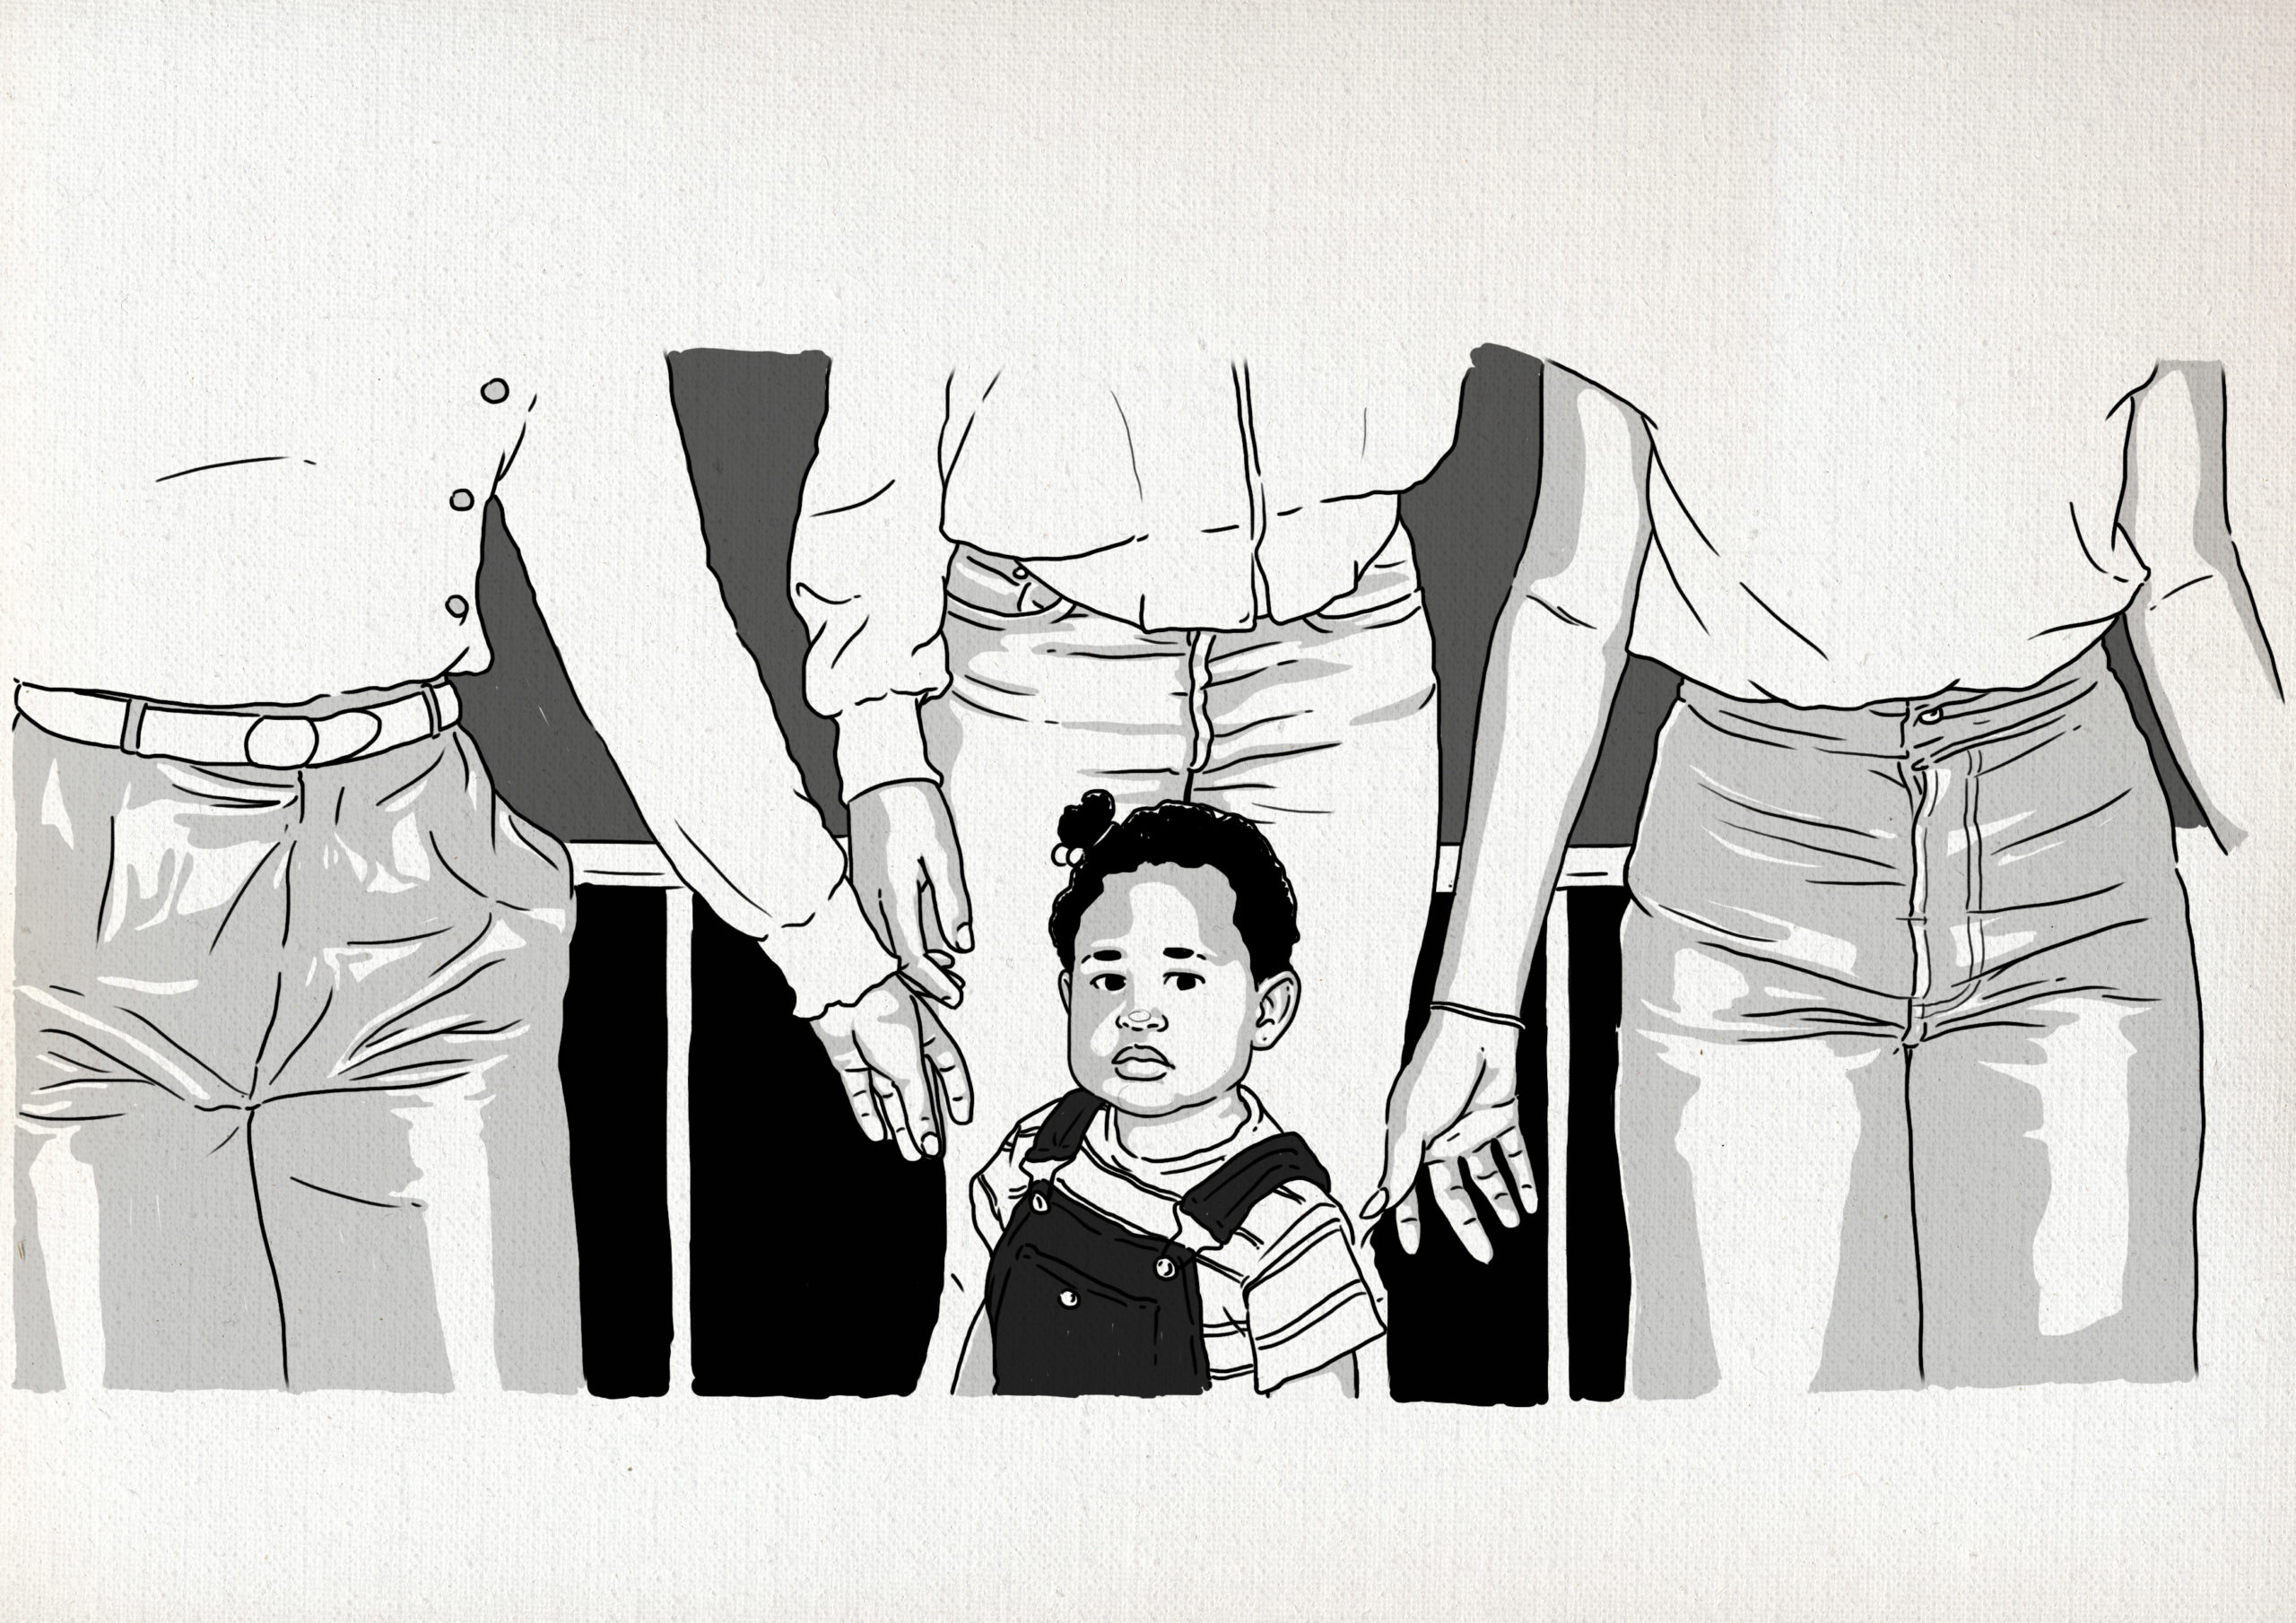 An image of Brena Jean as a toddler before learning her mom's namestanding in front of three women pictured from the waist down reaching out to her from behind.